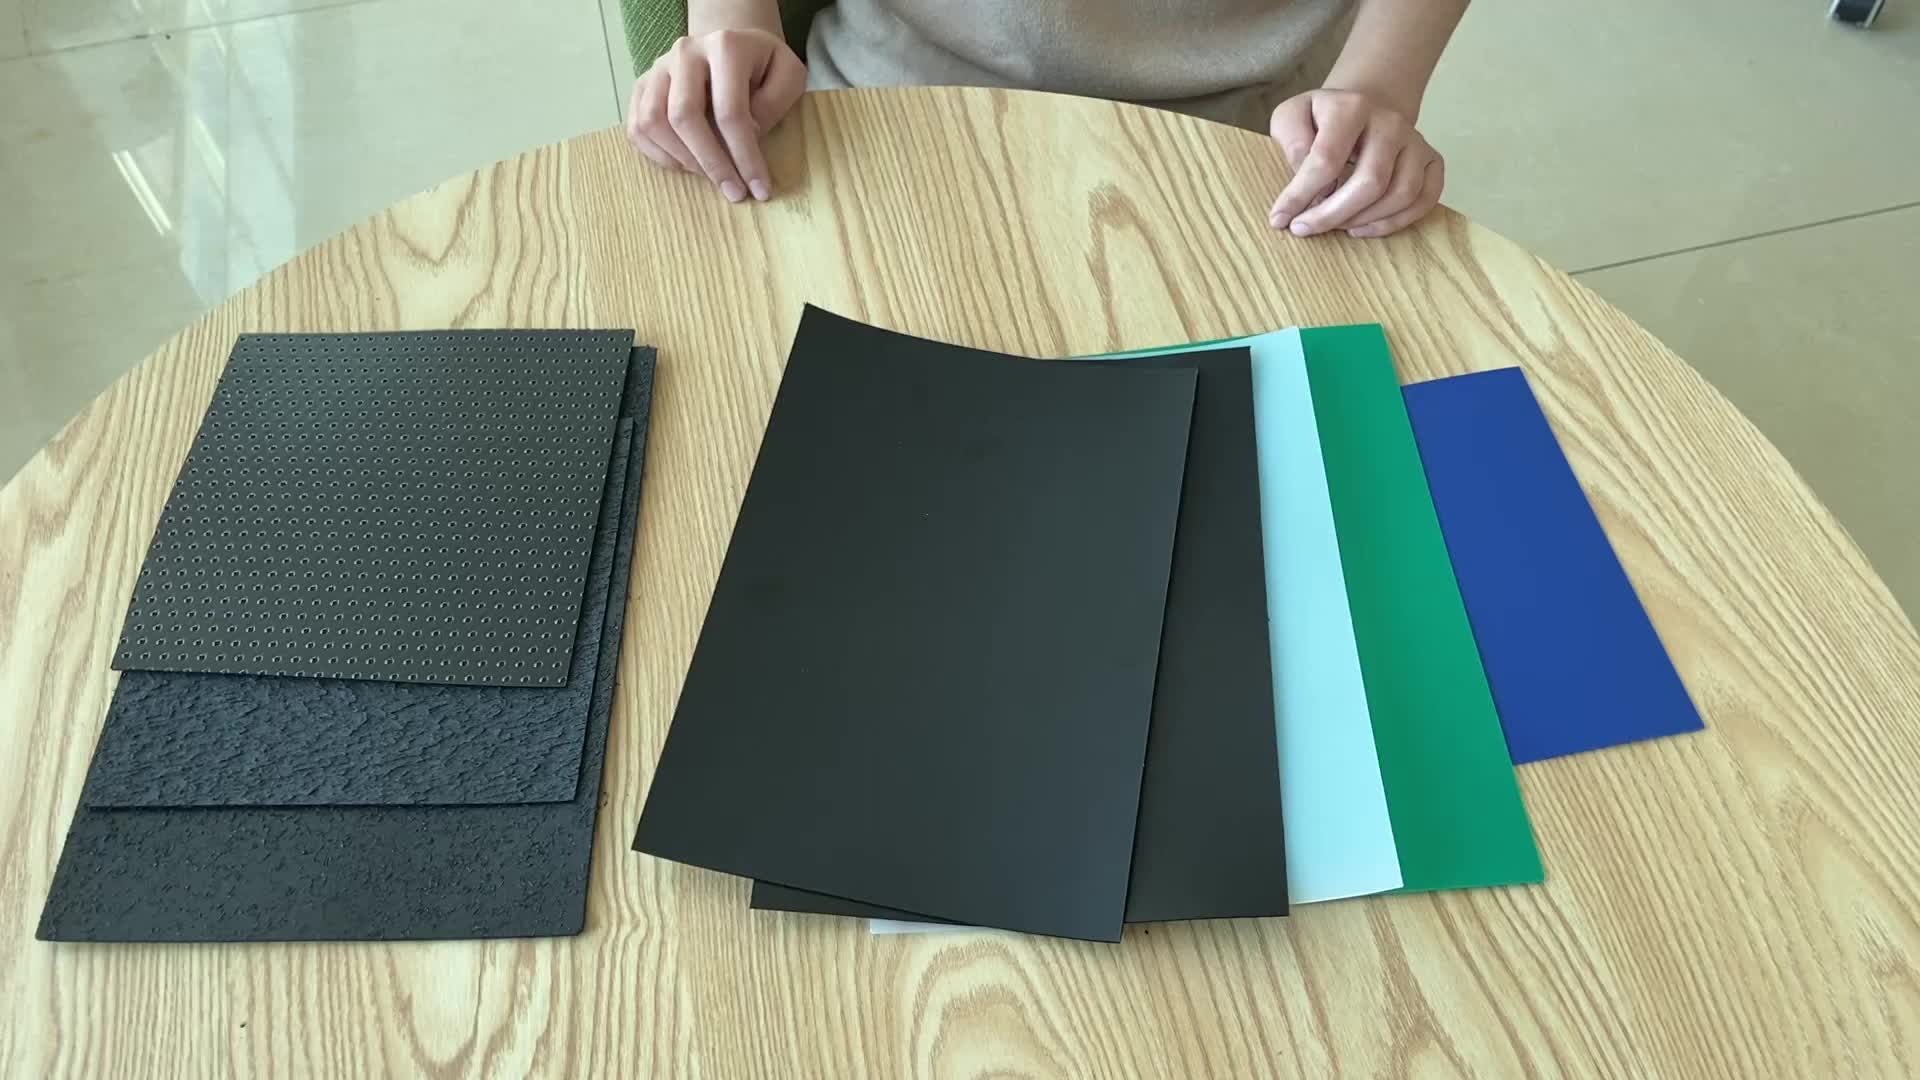 HDPE/LDPE lldpe geomembrane/liner